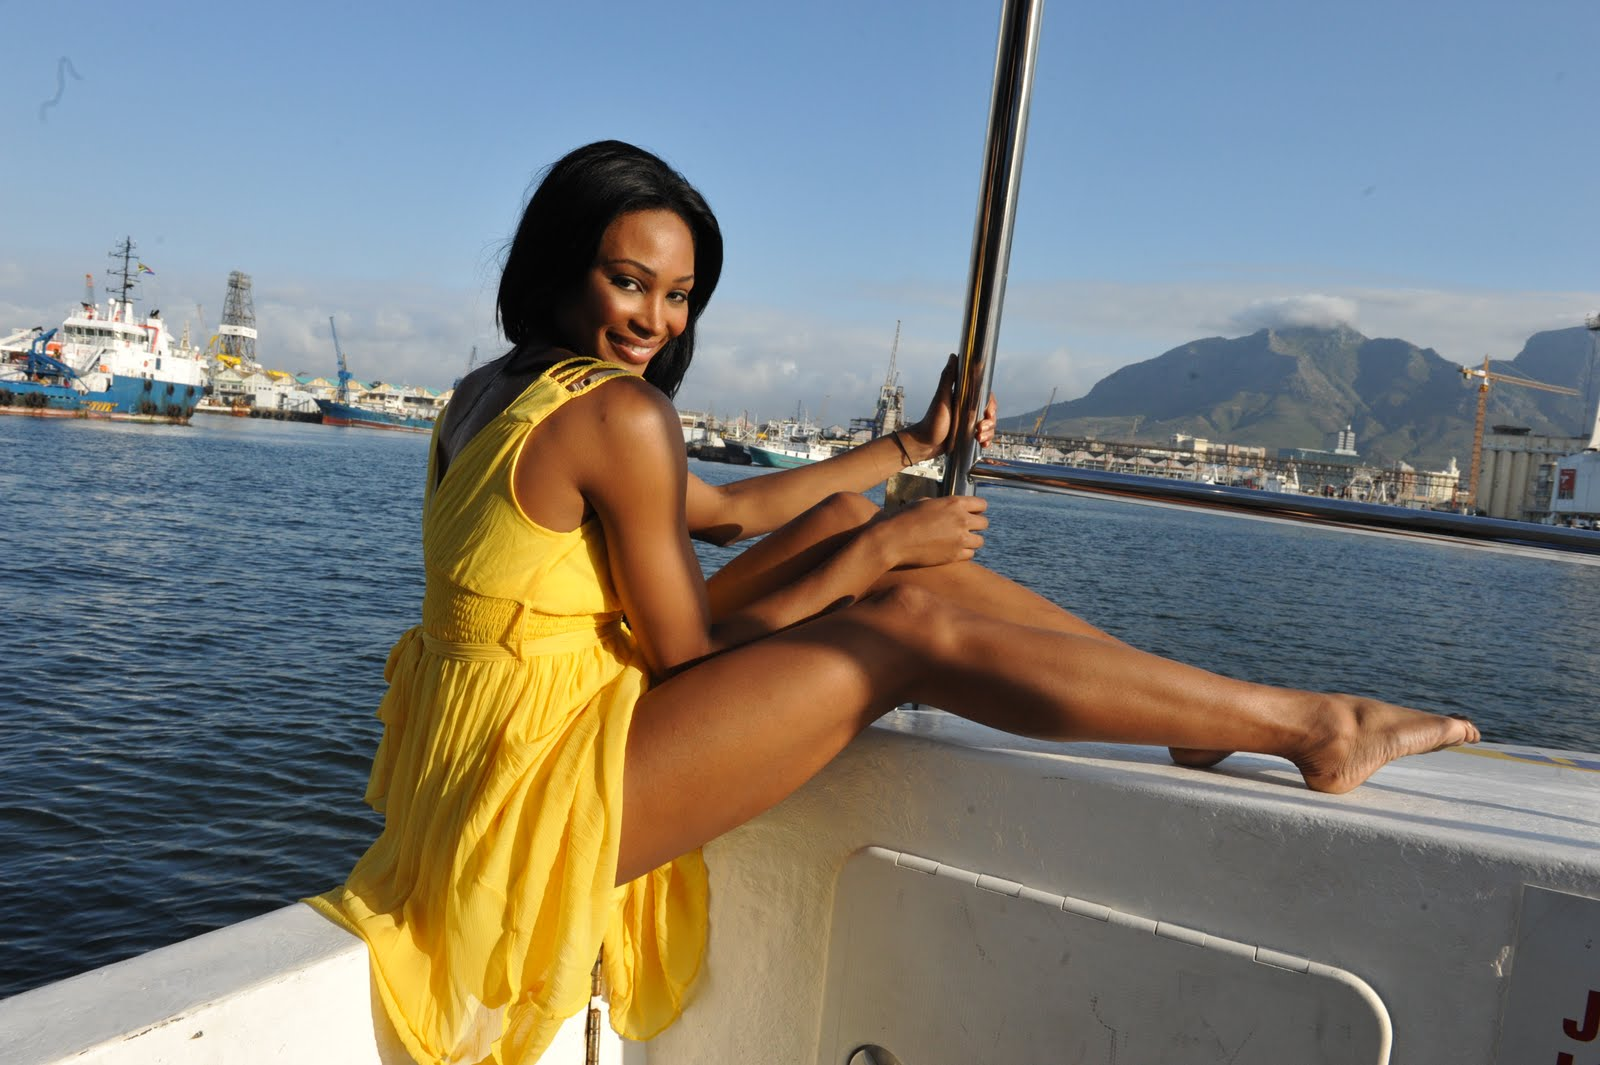 Black Women with nice legs>>>any other race | Sports, Hip ...